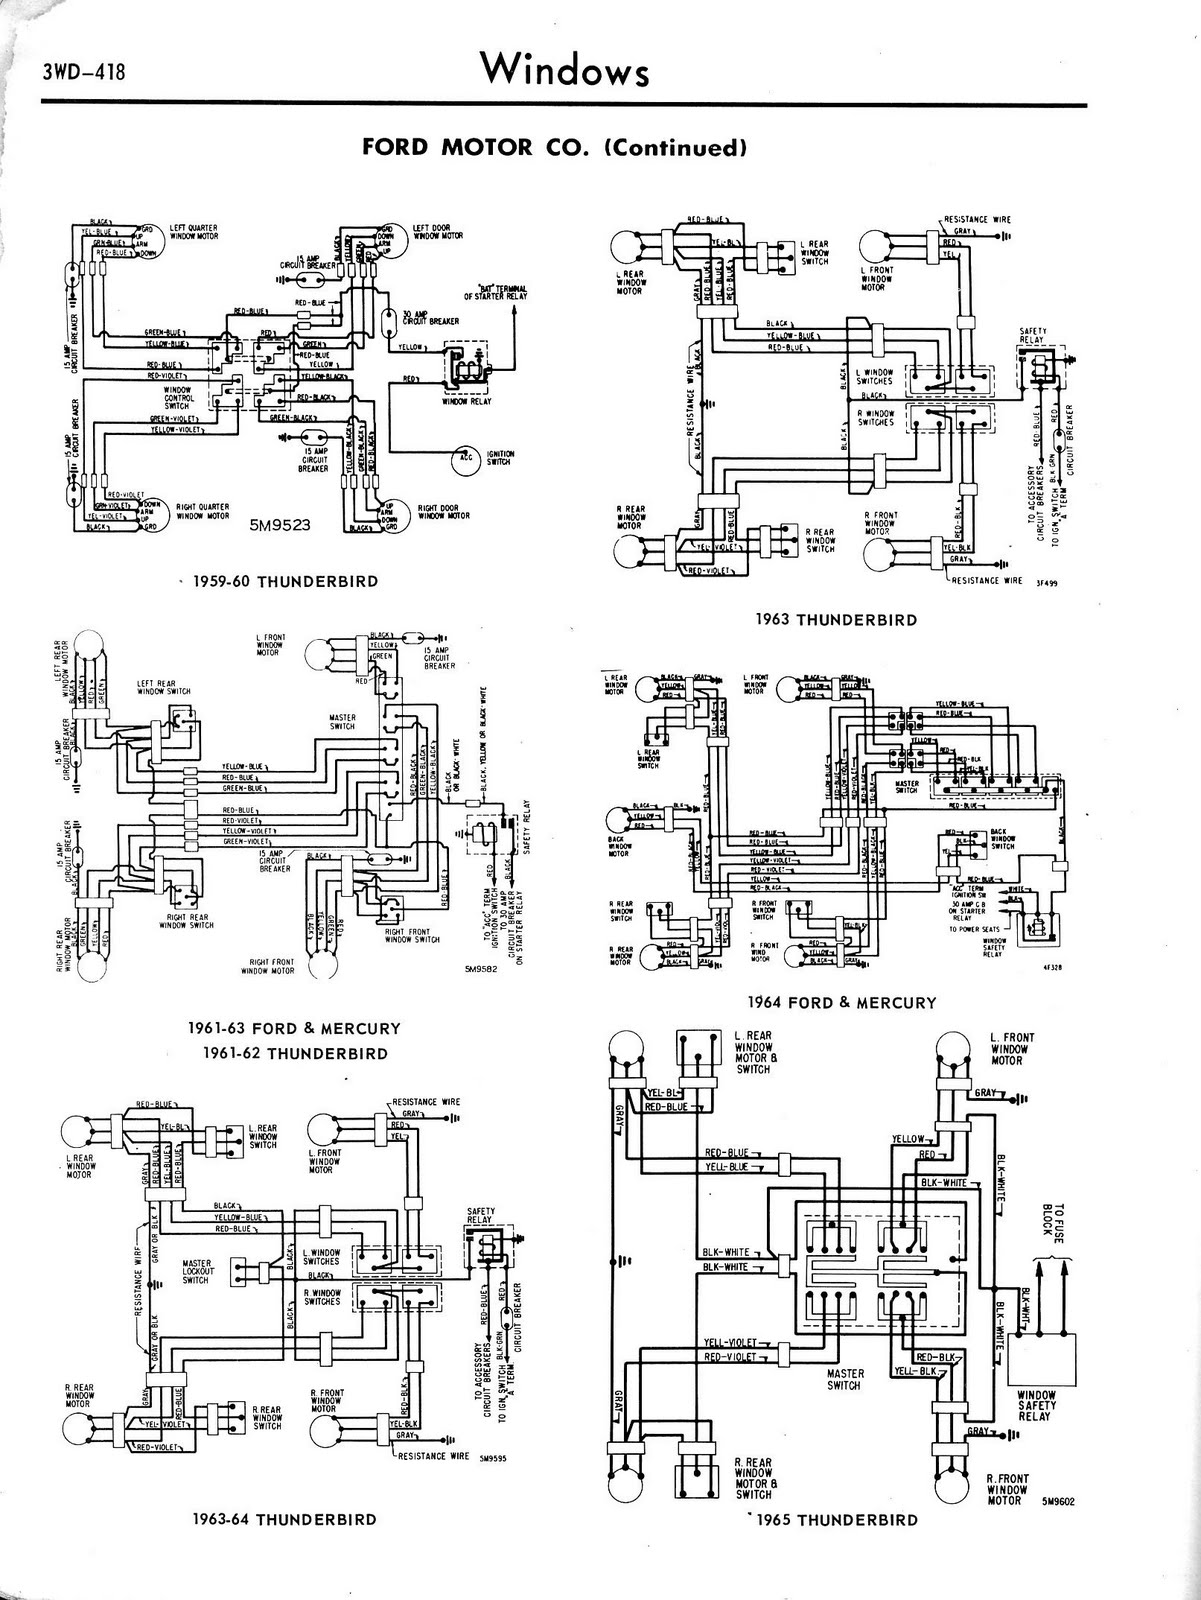 1965+Ford+Thunderbird+Window+Controls+Diagram wiring diagram for 1972 ford f100 the wiring diagram 1988 ford thunderbird wiring diagram manual at virtualis.co